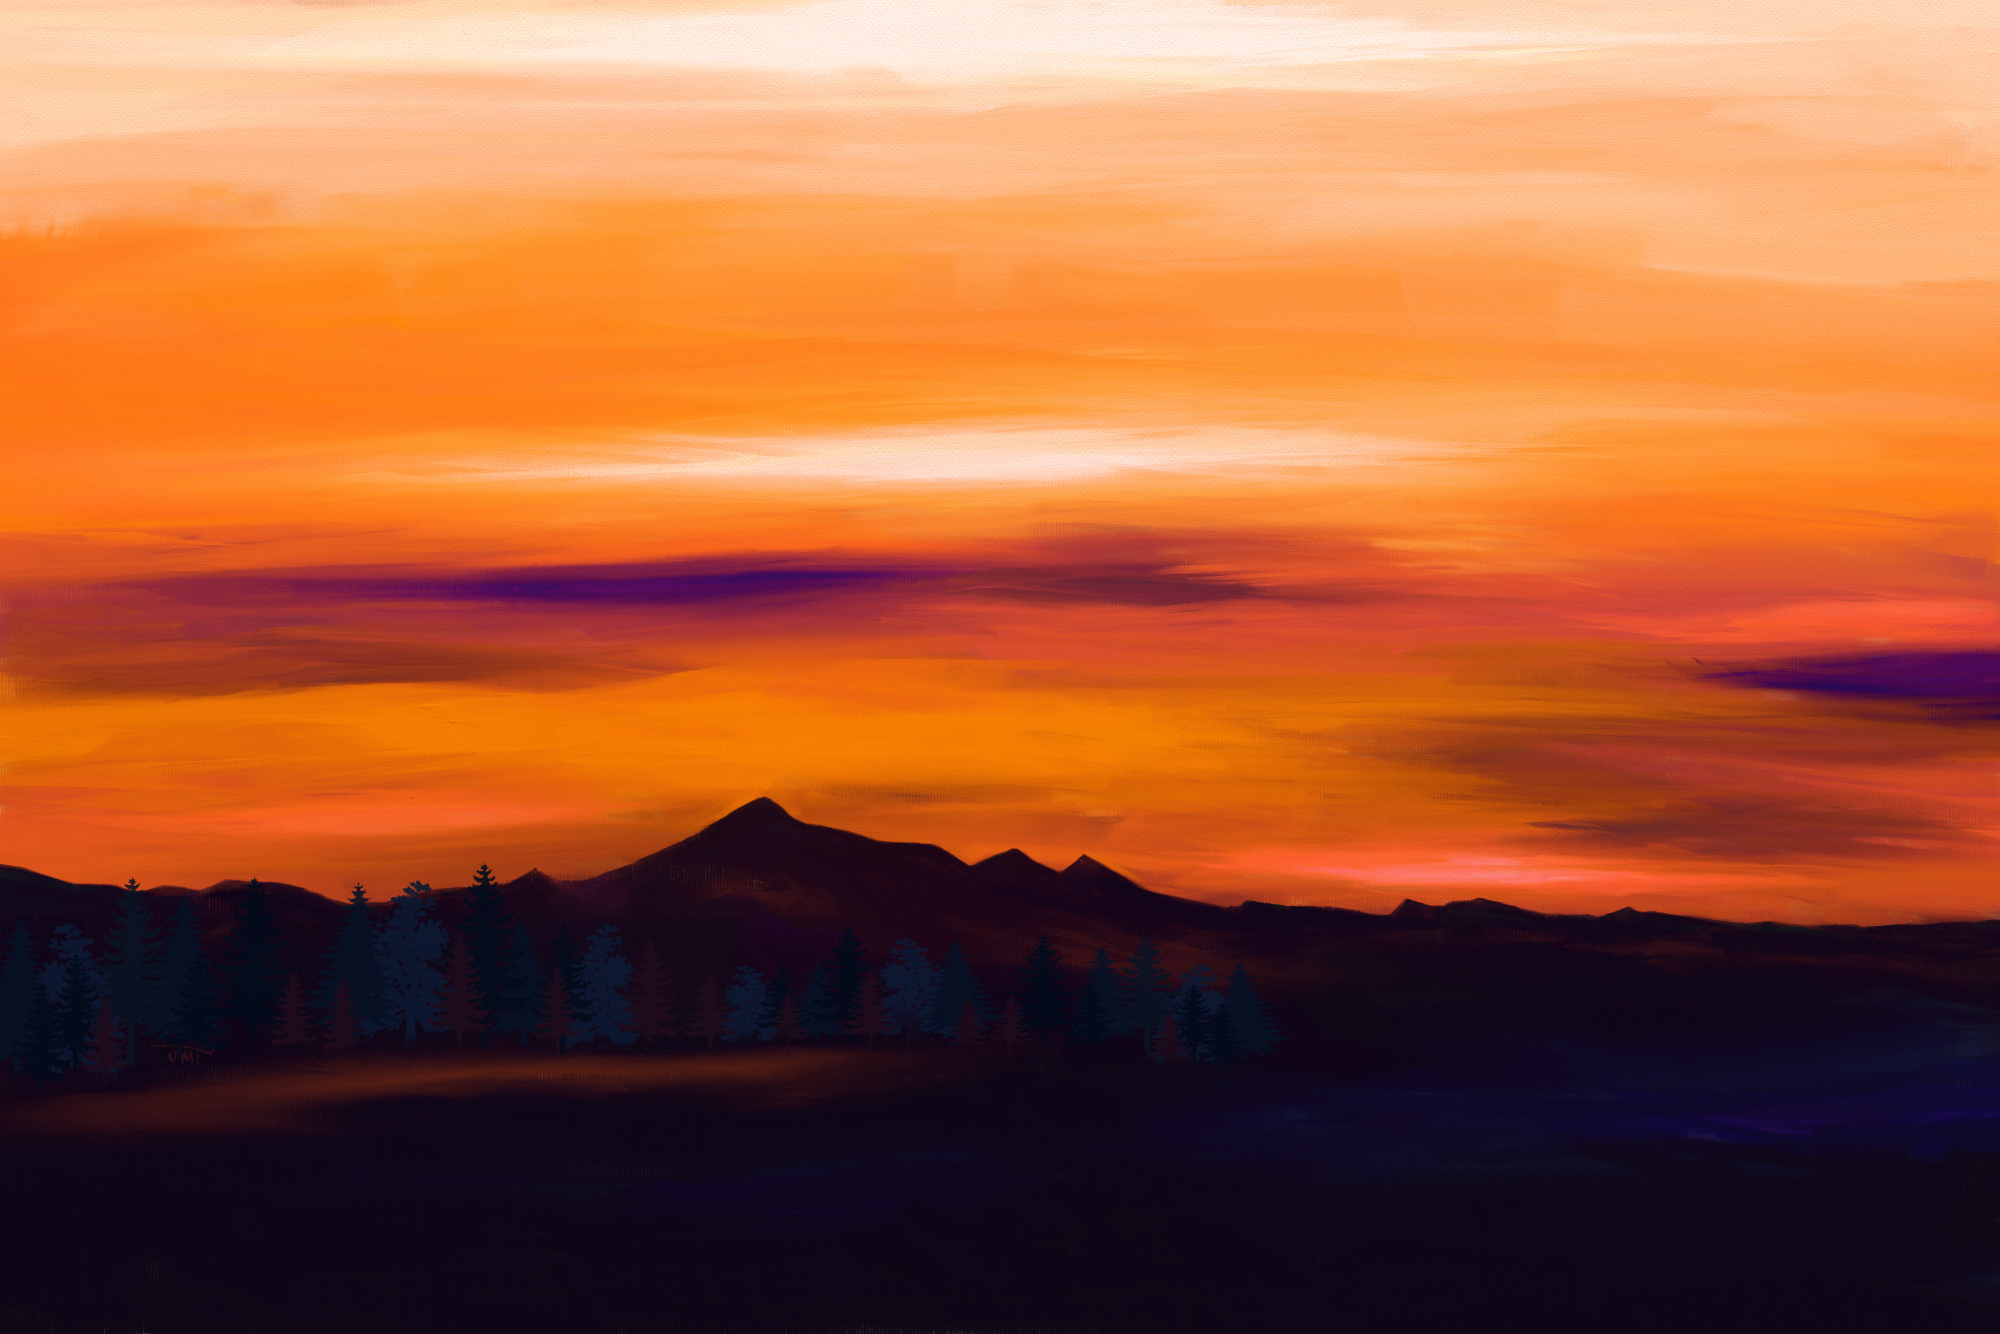 Digital acrylic painting of a landscape with an orange sky